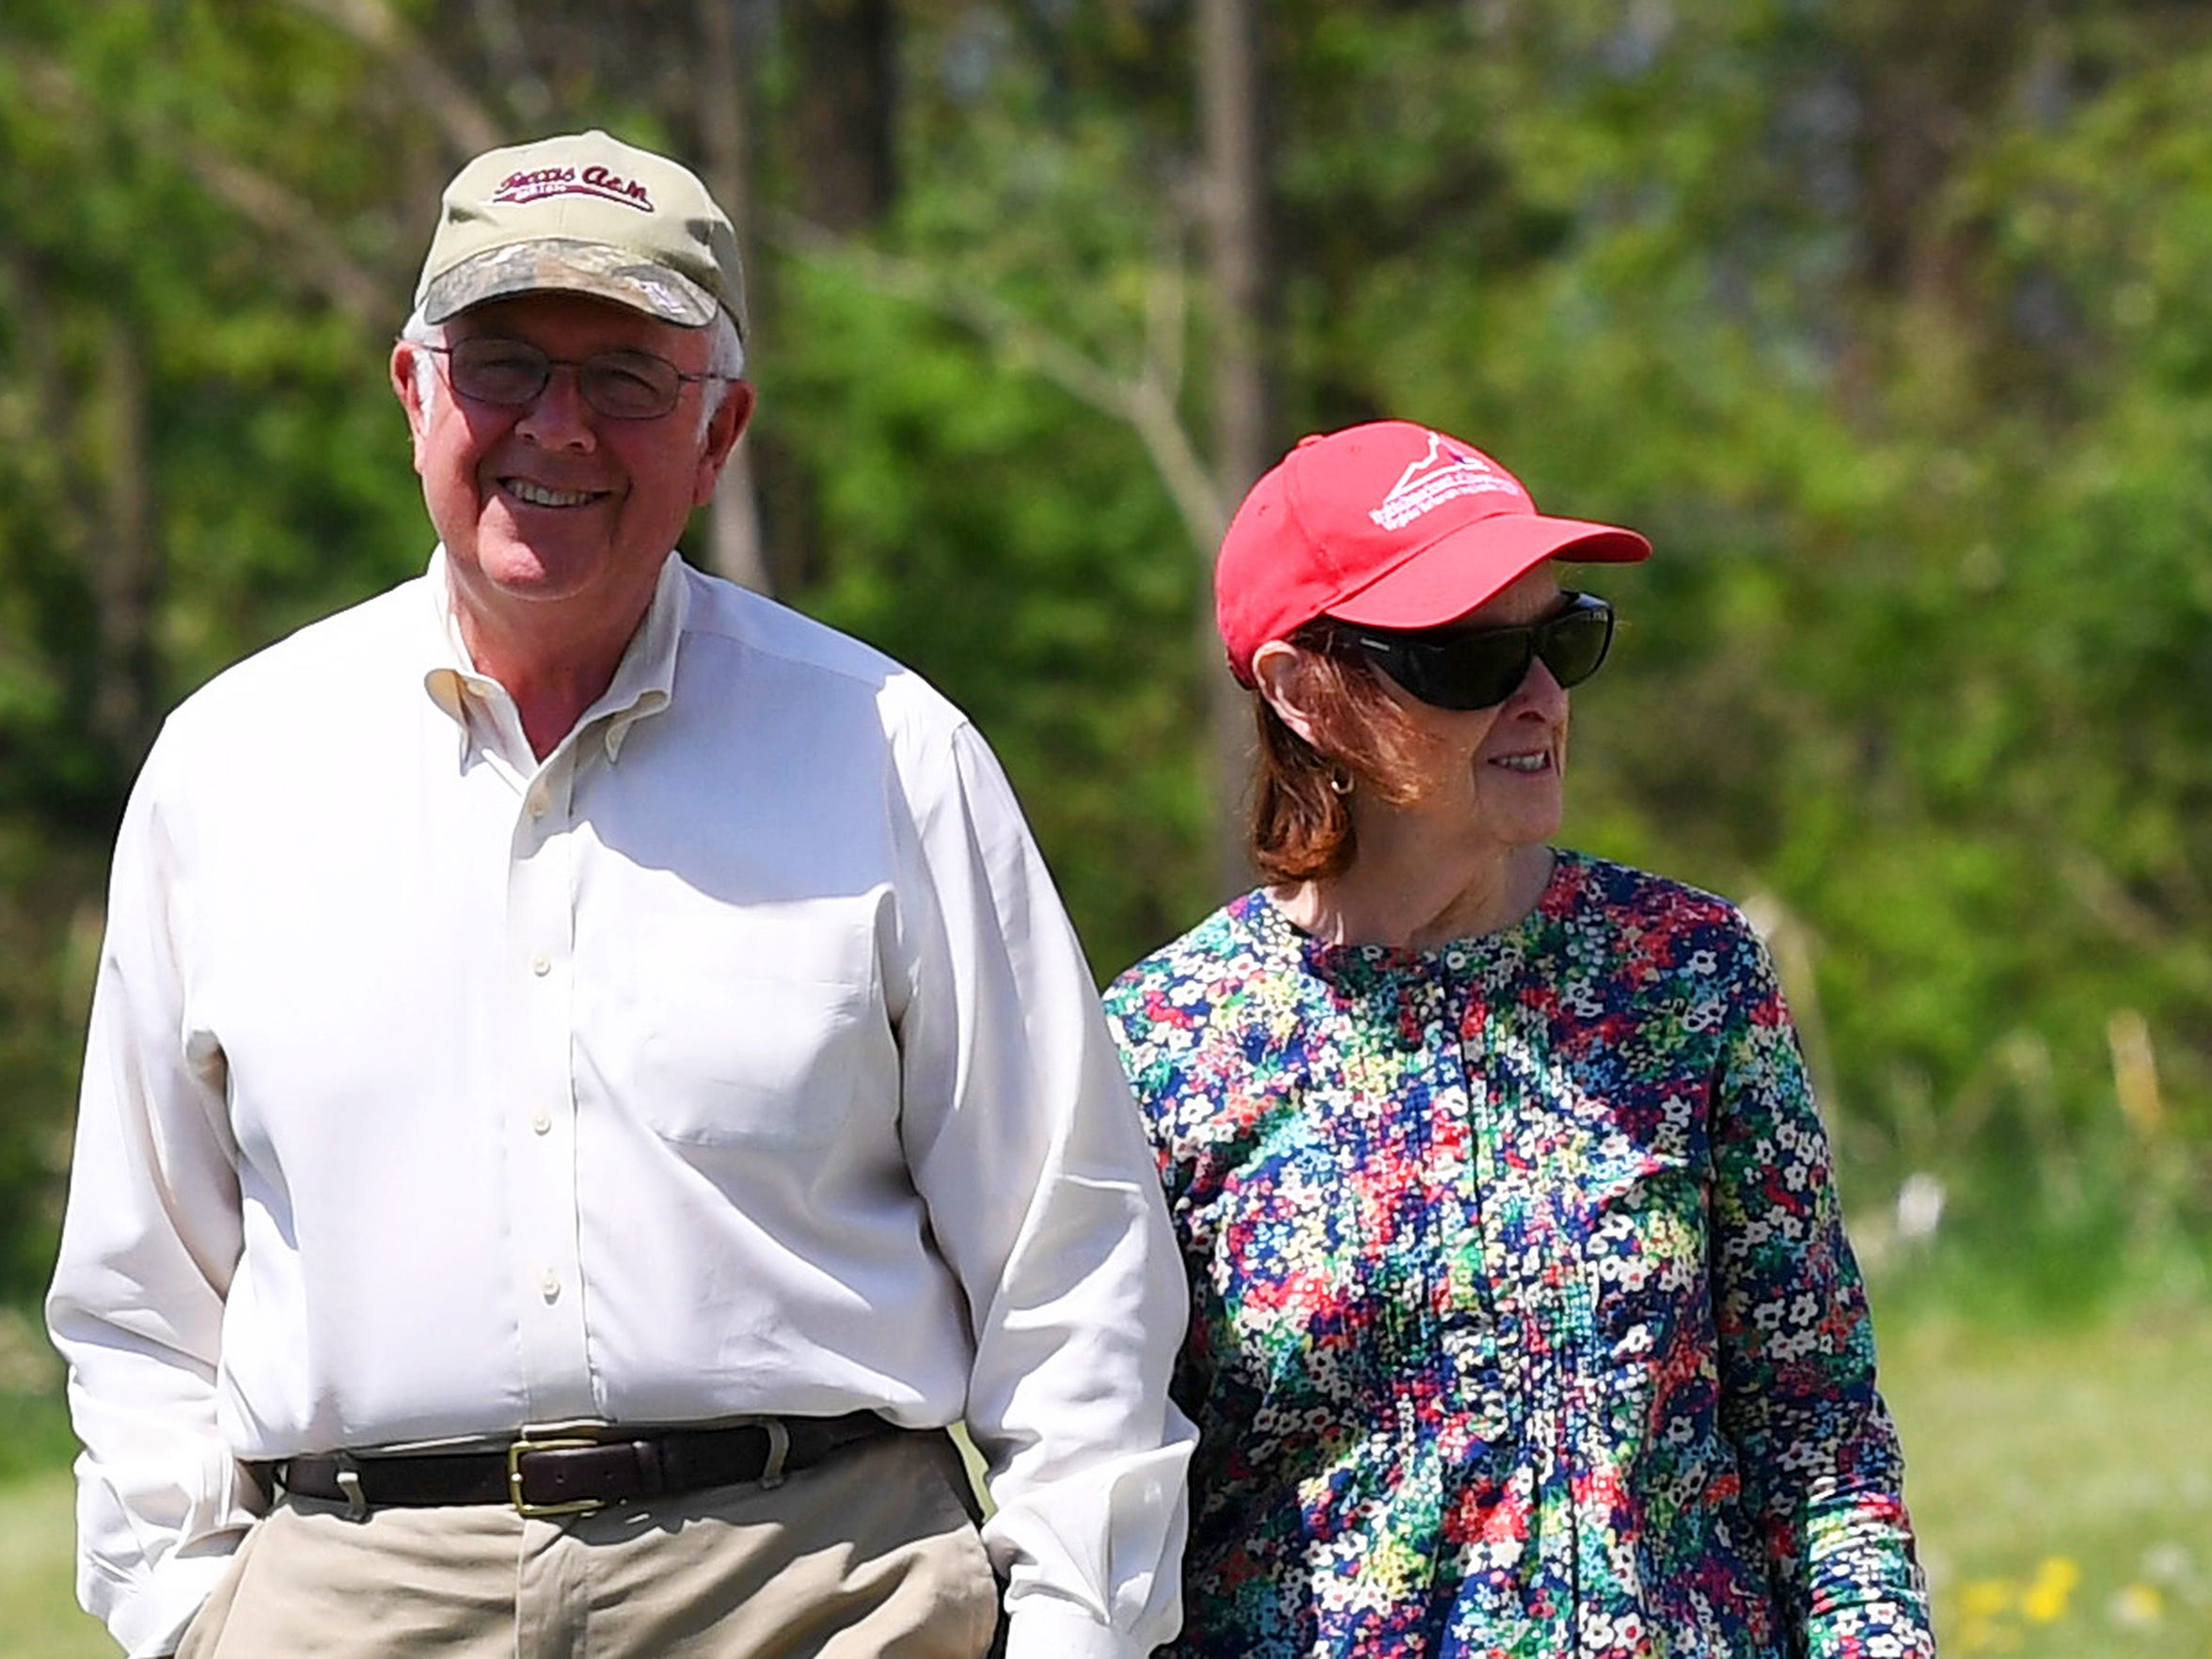 Carol Webb walks with her husband Patrick Webb on Thursday, May 3, 2018. The couple like to go walking at least 3 times each week. Carol was diagnosed with Alzheimer's disease in November 2016.